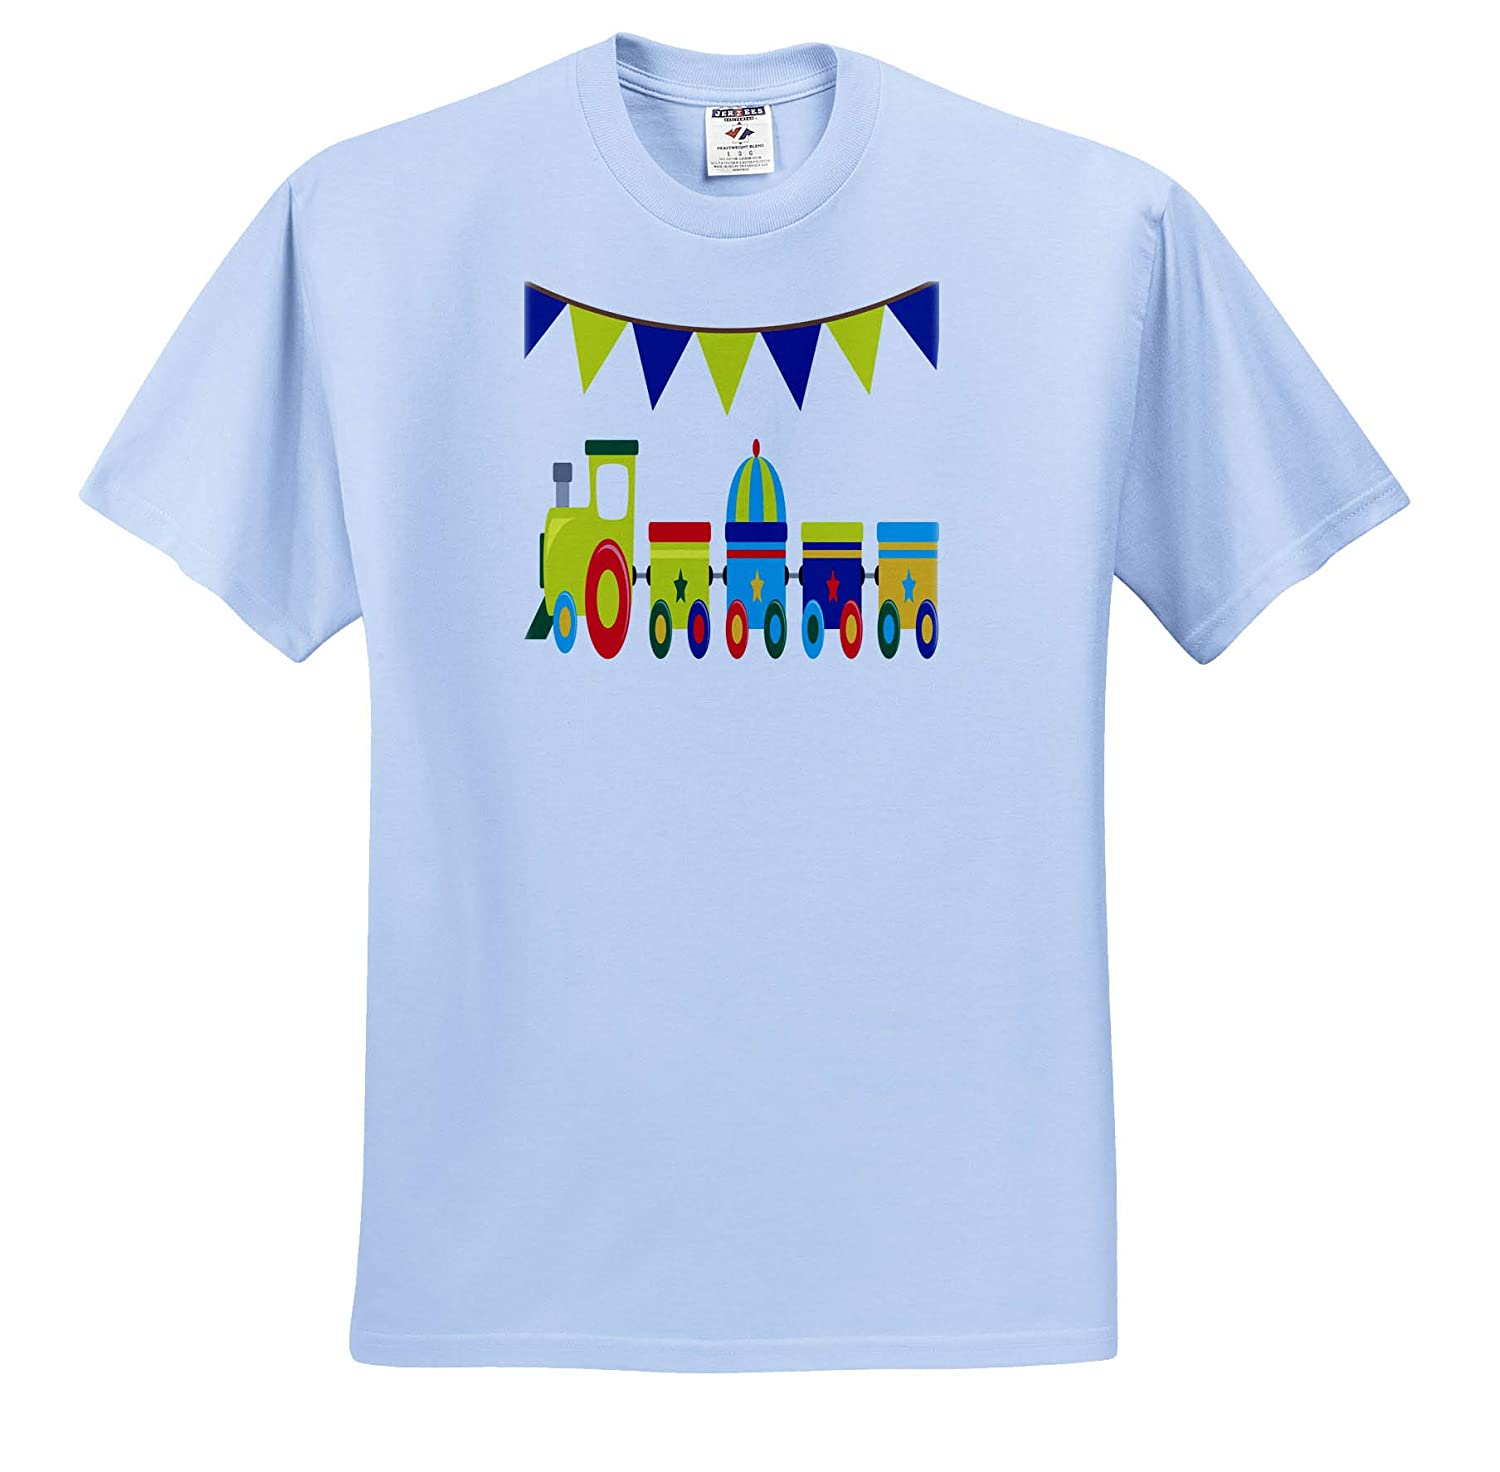 3dRose Anne Marie Baugh Adult T-Shirt XL Designs ts/_308794 Cute and Colorful Train Illustration